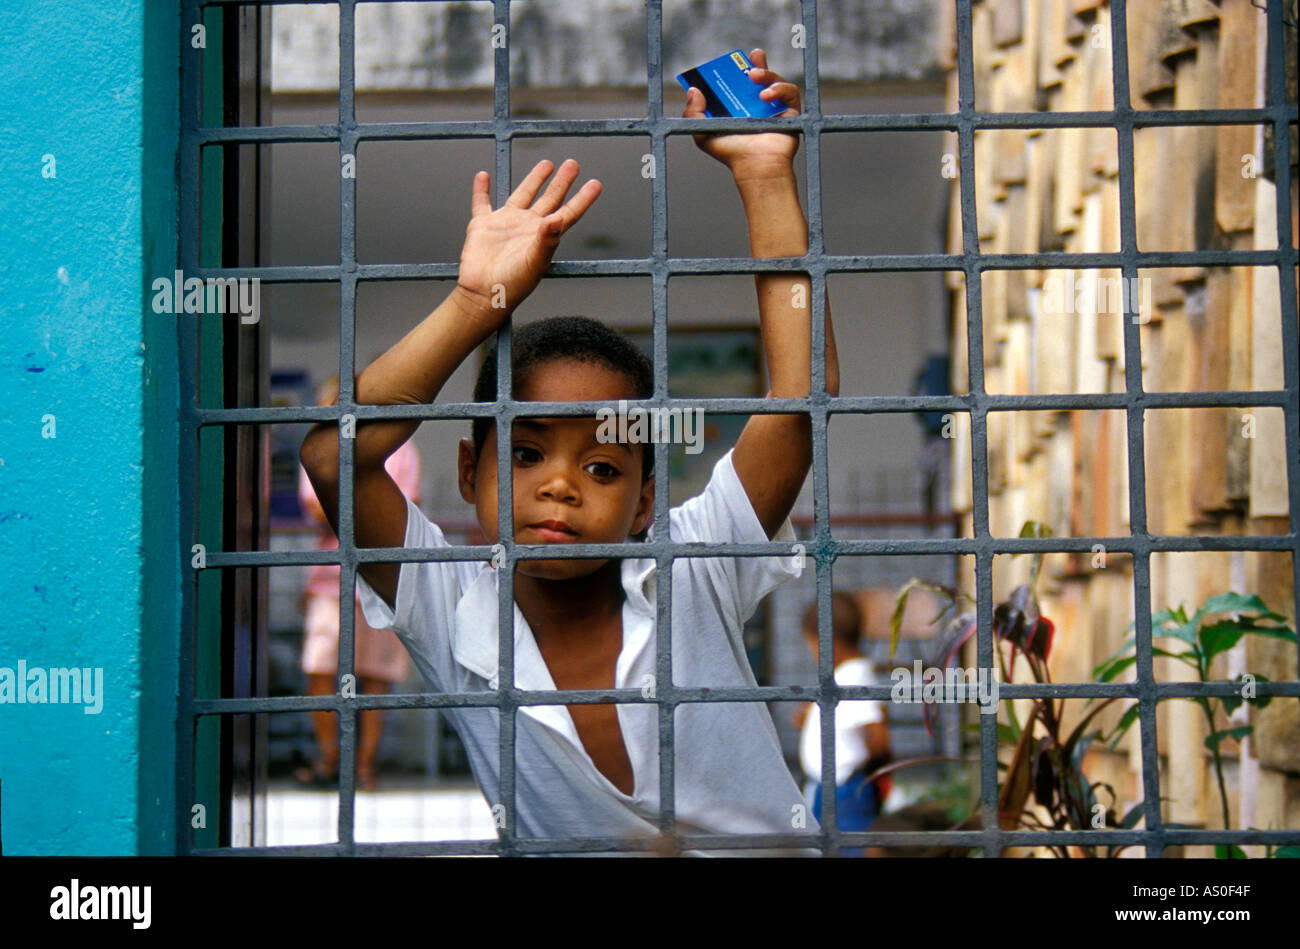 Young boy in Brazil at Pelourinno school - Stock Image